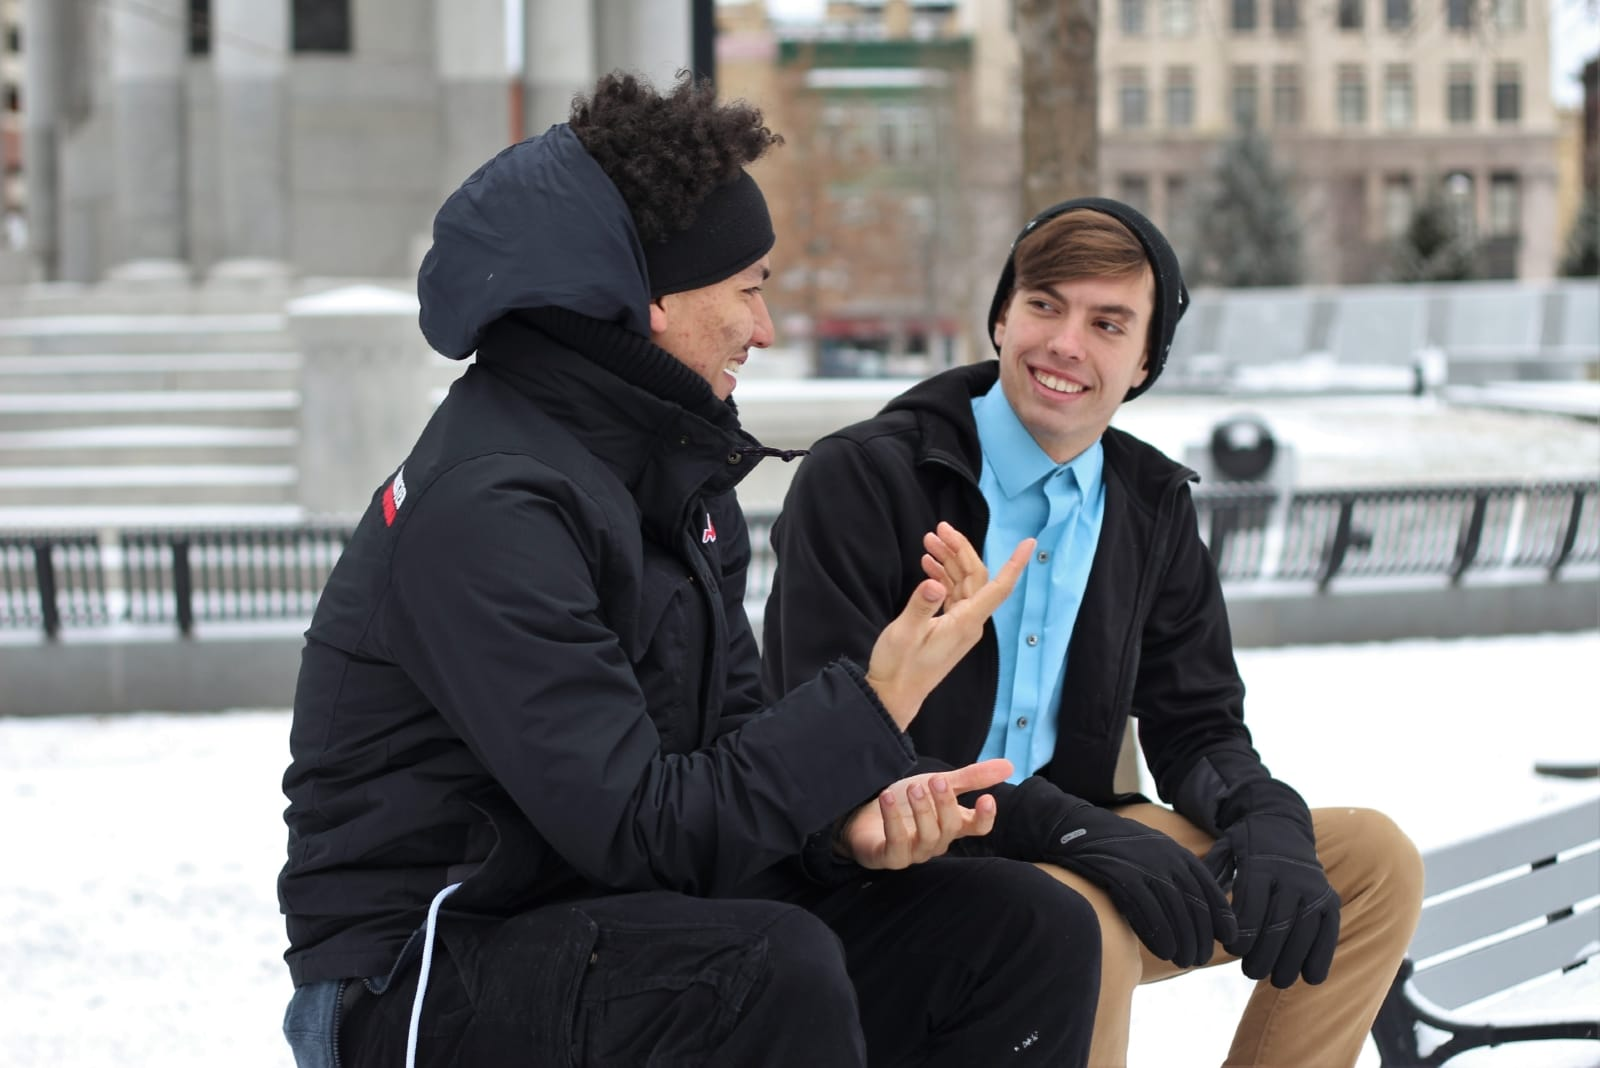 two men talking while sitting outdoor in winter